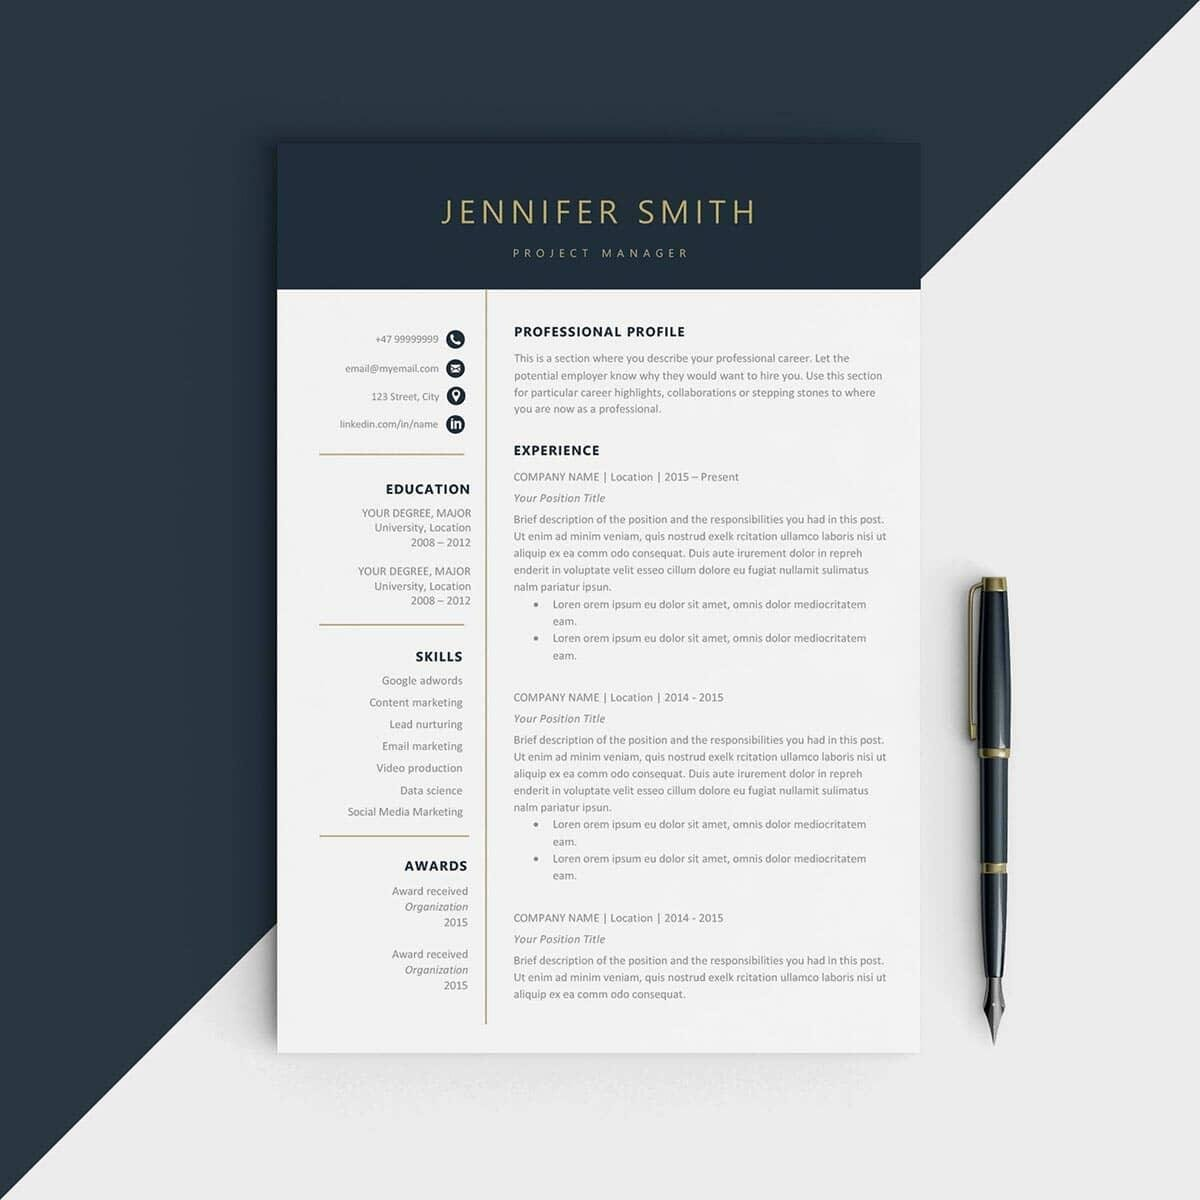 resume Best Resume Images best resume templates 15 examples to download use right away business template with elegant header